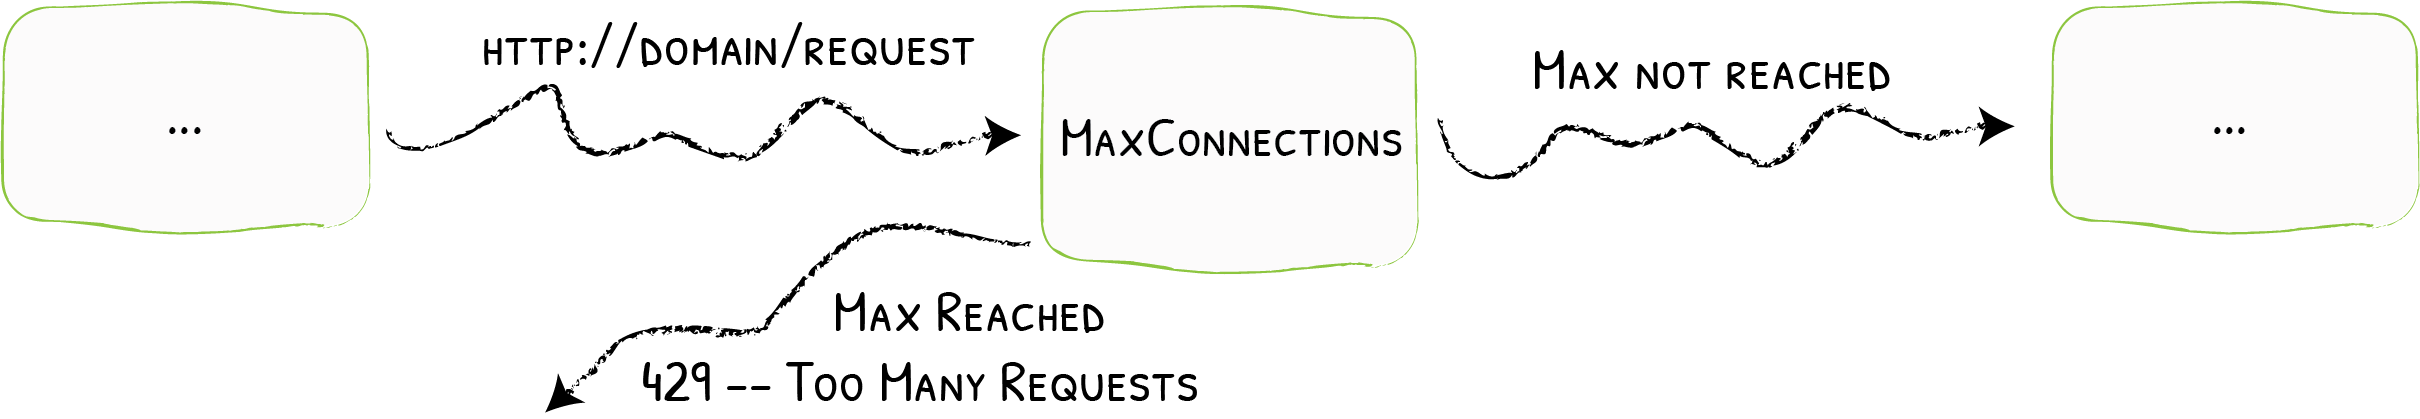 MaxConnection